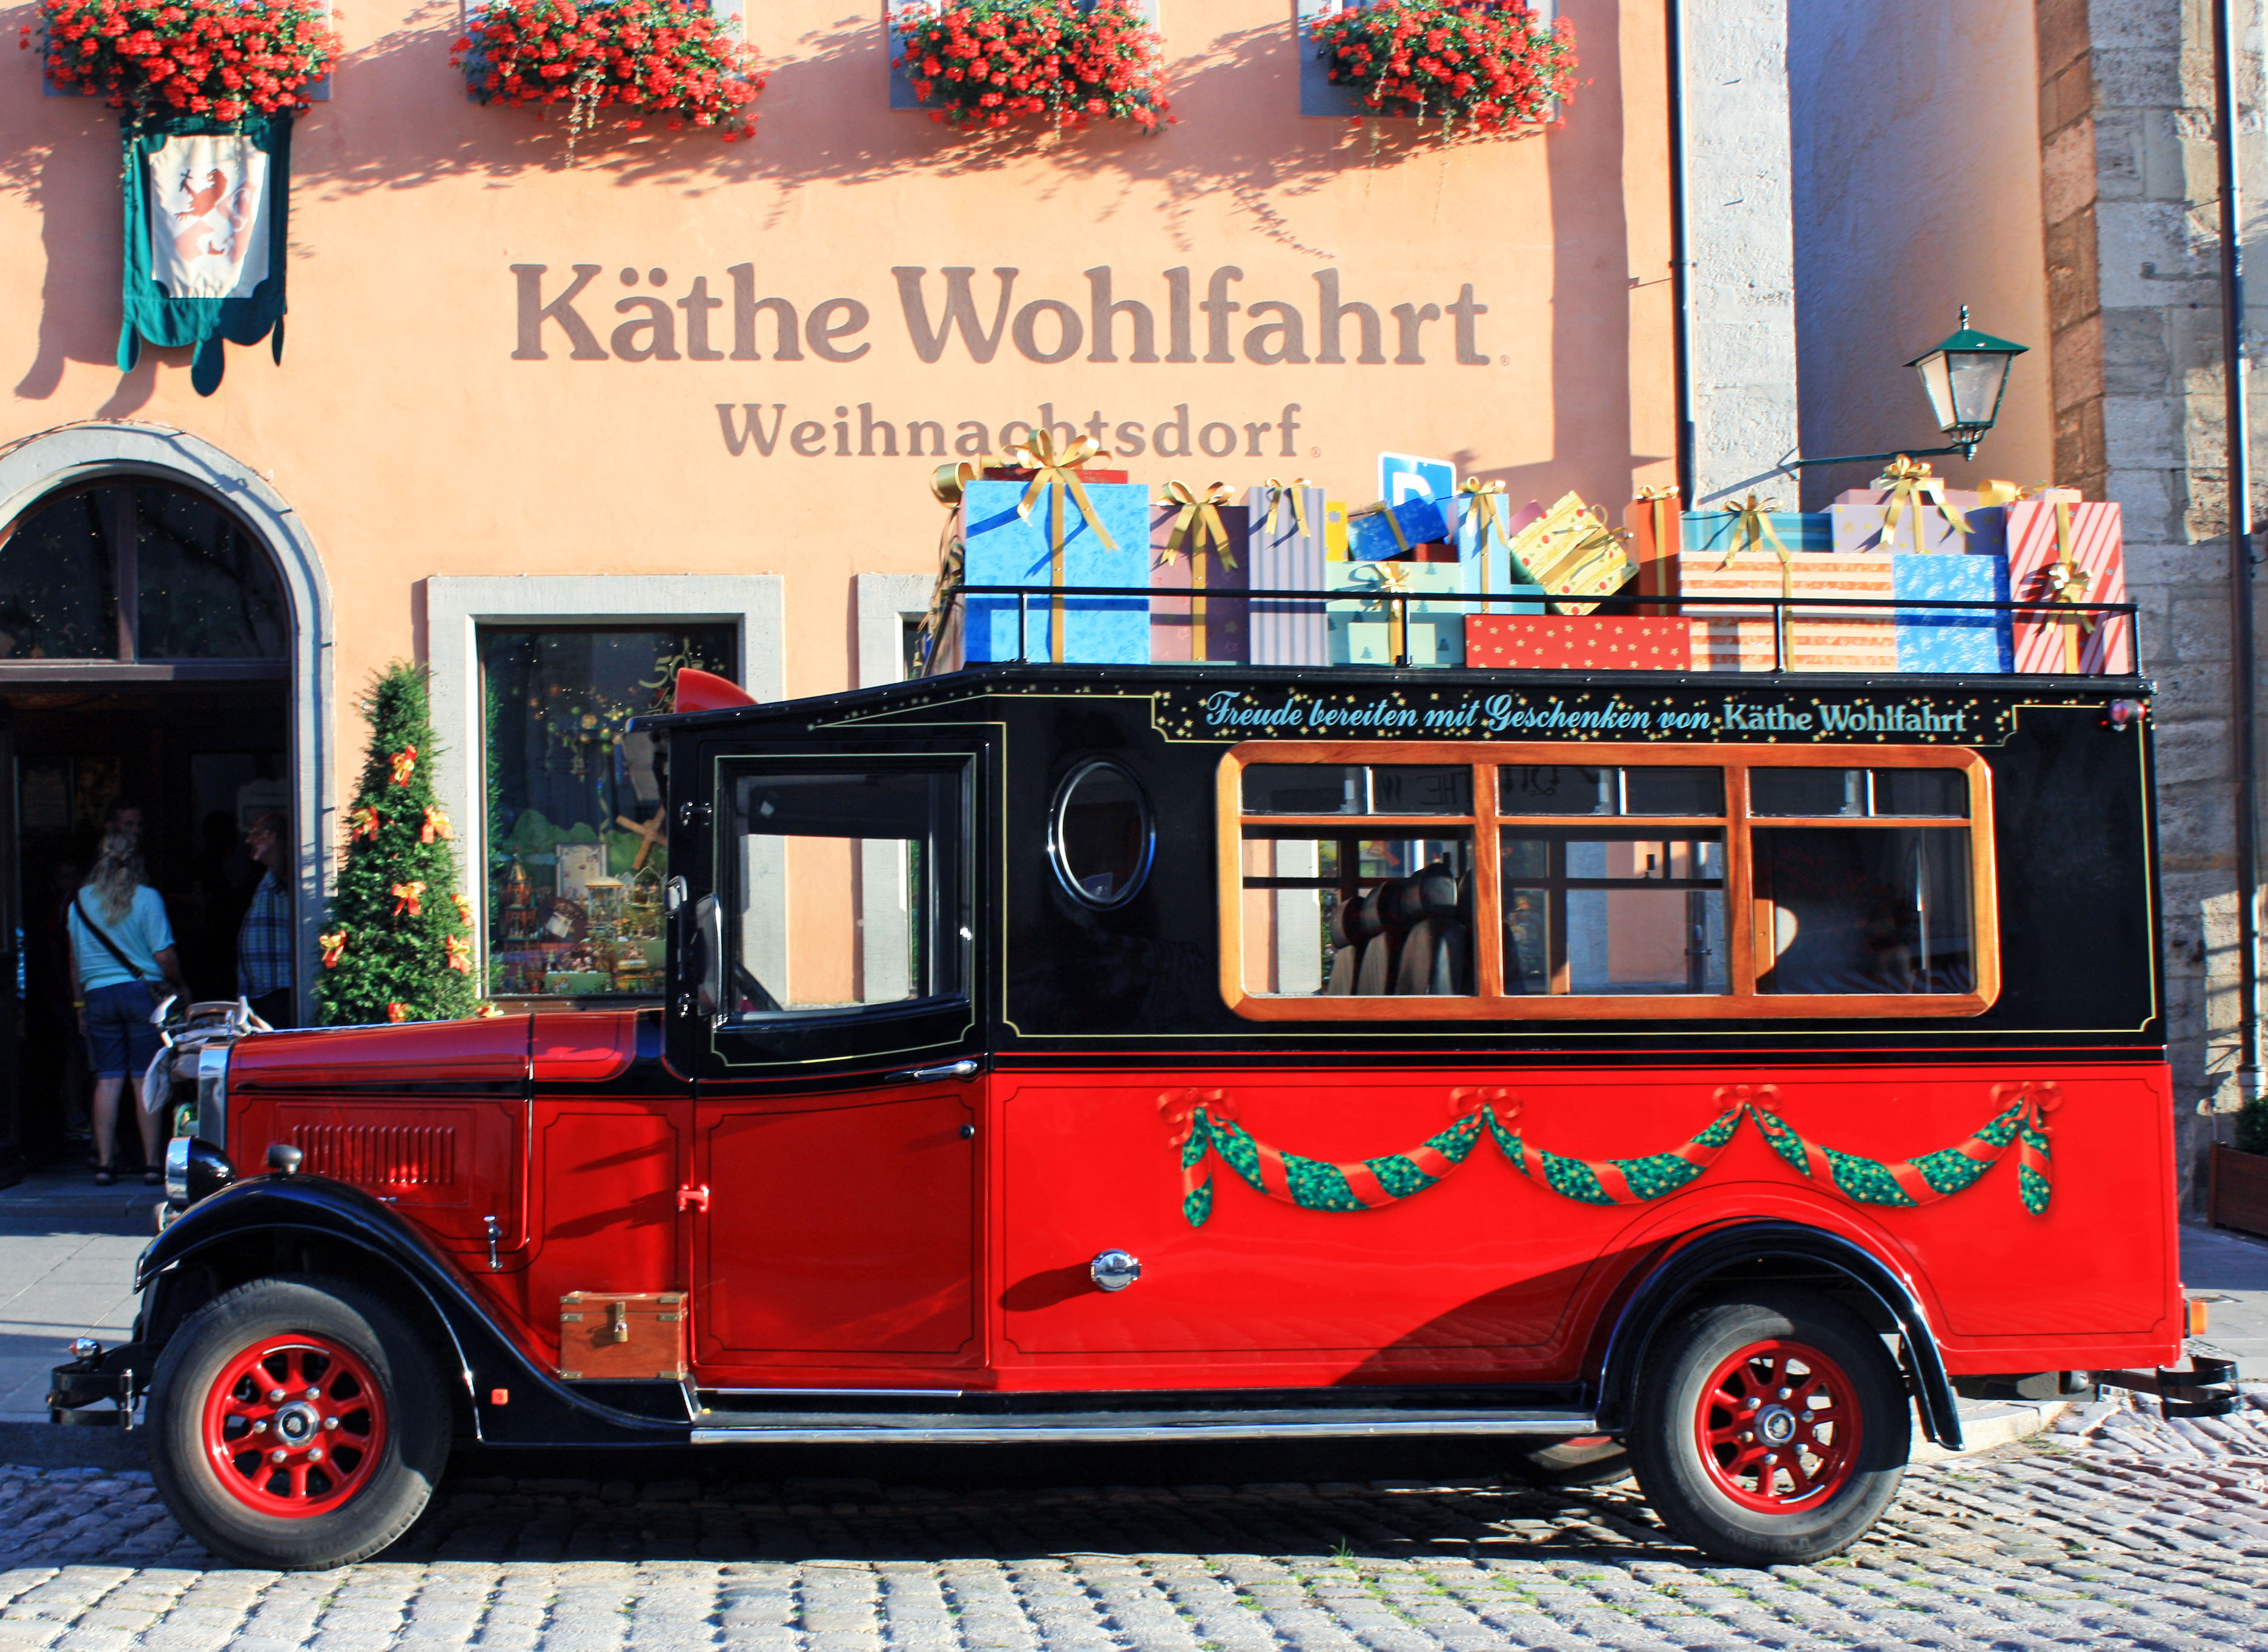 Kathe Wohlfahrt Christmas museum and store.